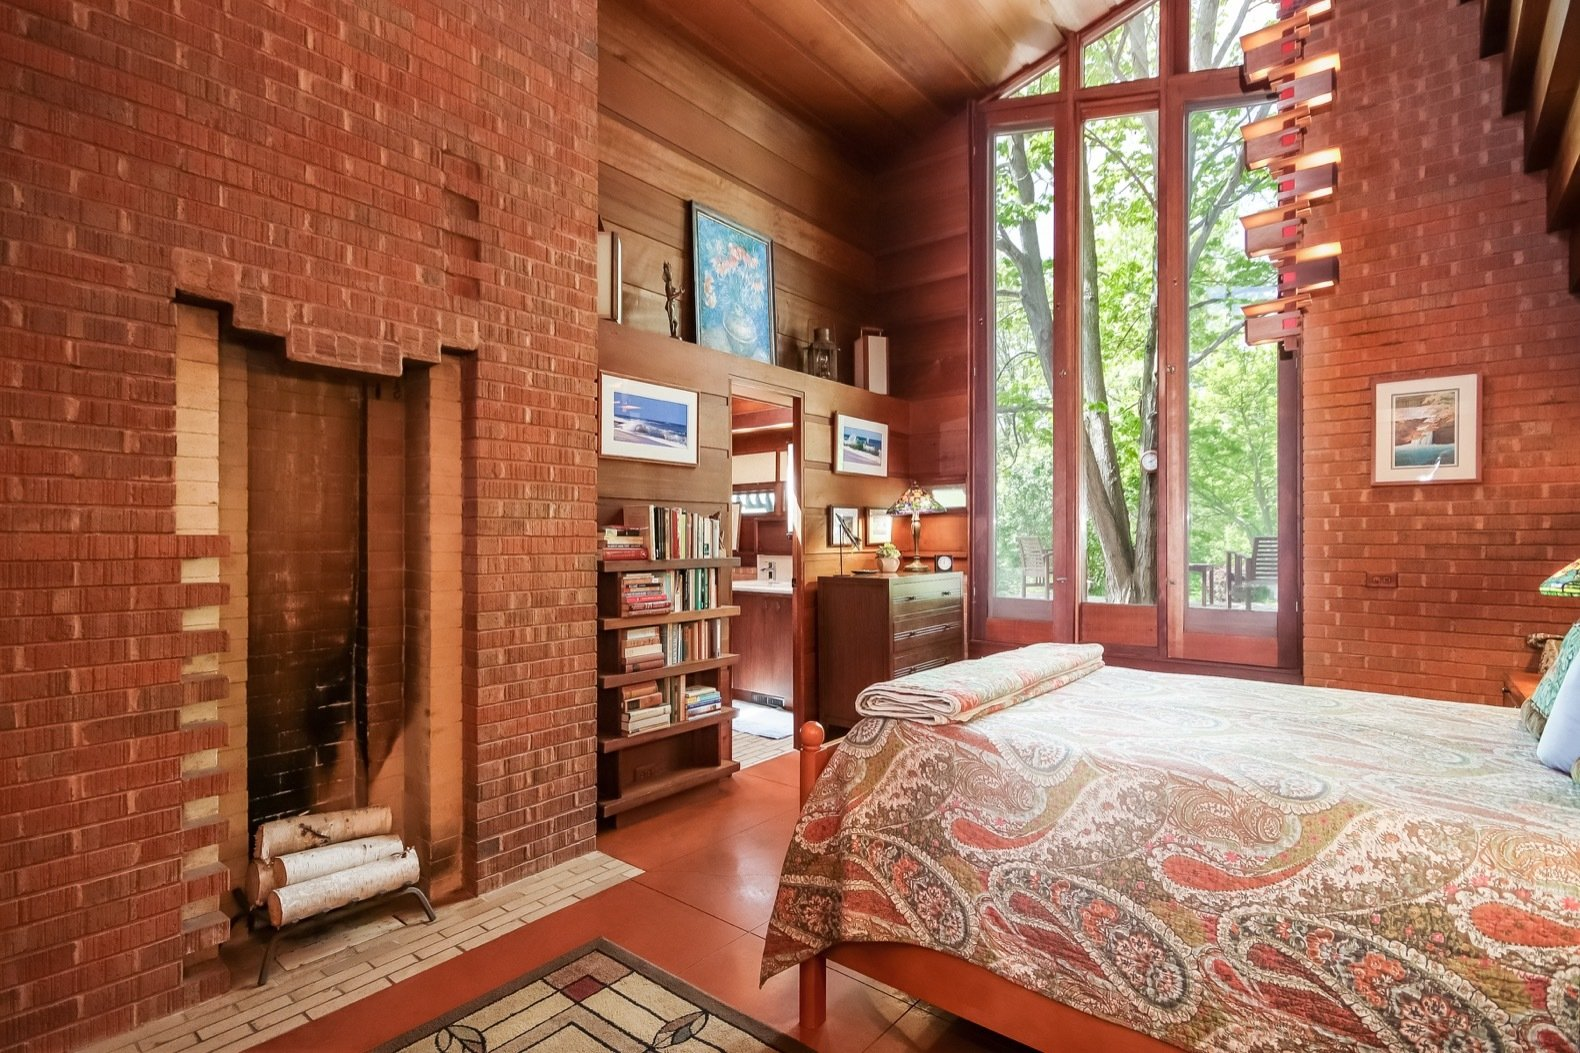 Bedroom, Bed, Concrete Floor, Bookcase, Dresser, Table Lighting, and Rug Floor The master bedroom includes a brick fireplace, a 25-foot-tall ceiling, and doors that lead outside.  Photo 9 of 17 in A Gorgeous Frank Lloyd Wright Home Hits the Market For the First Time at $1.2M